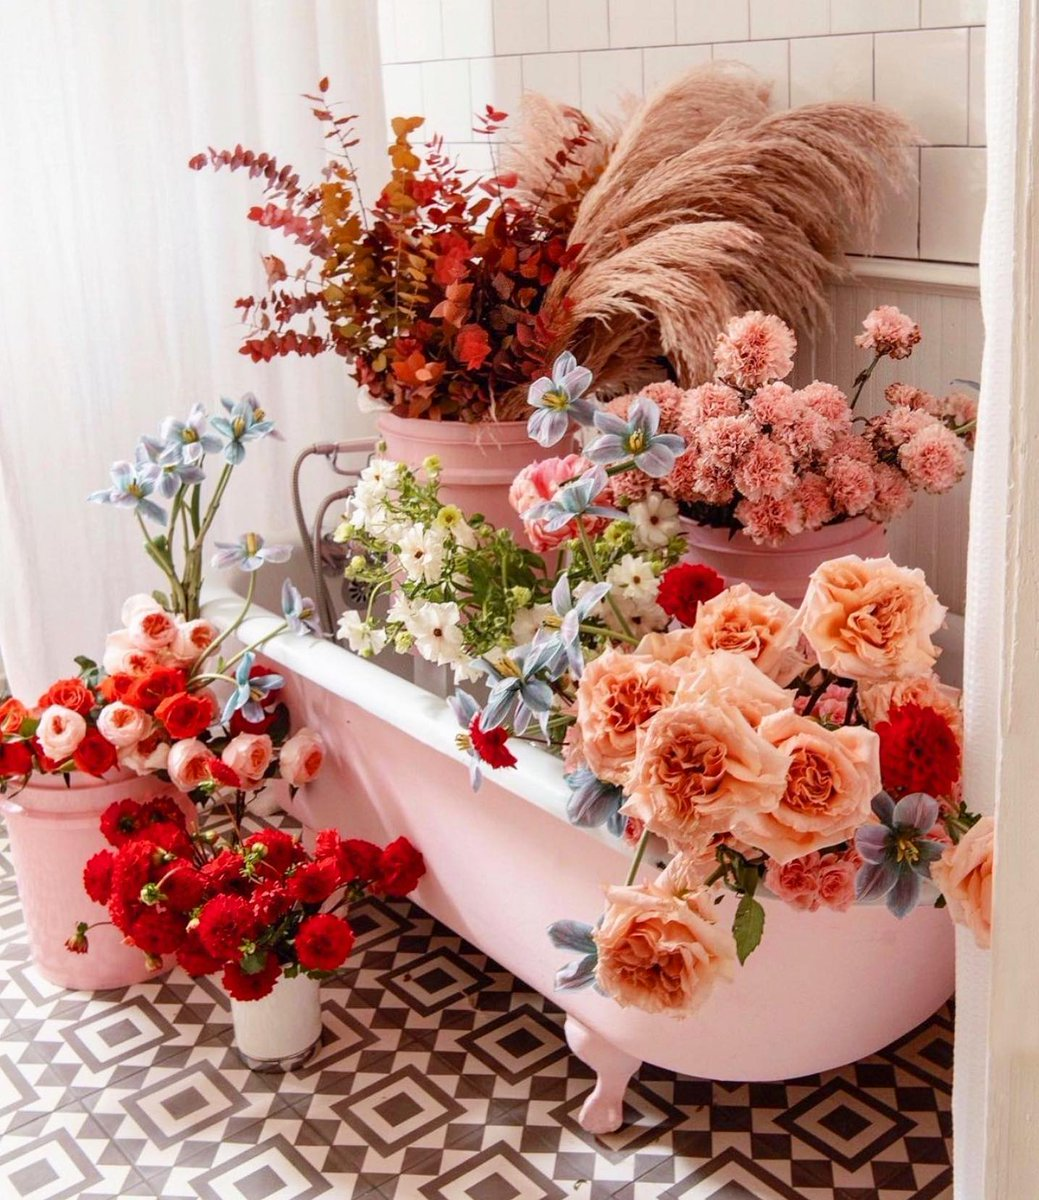 Happy Monday! We are in awe of this floral dream...✨🌷🌹💗 #budhagirl 📸 @acolorstory @eastolivia #inspo #floral #flowers #flower #MondayVibes #MondayMorning #mondaythoughts #MondayMood #happymonday #inspiration